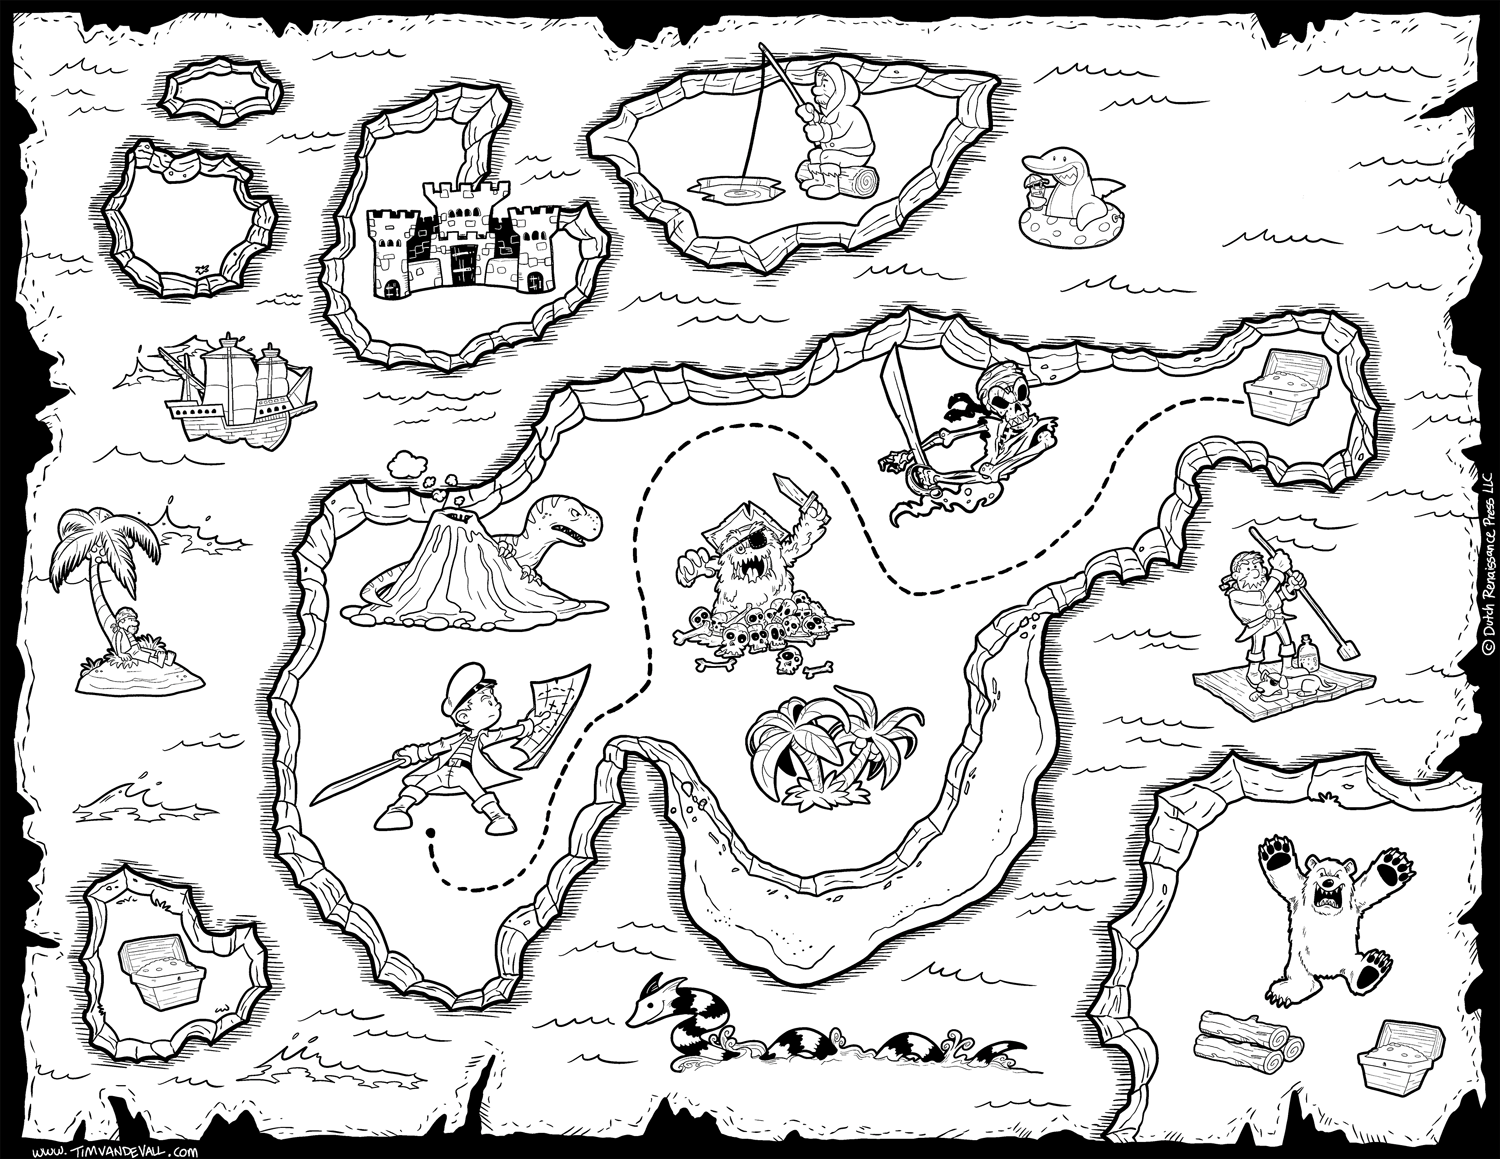 pirate map coloring page free pirate treasure maps and party favors for a pirate page coloring map pirate